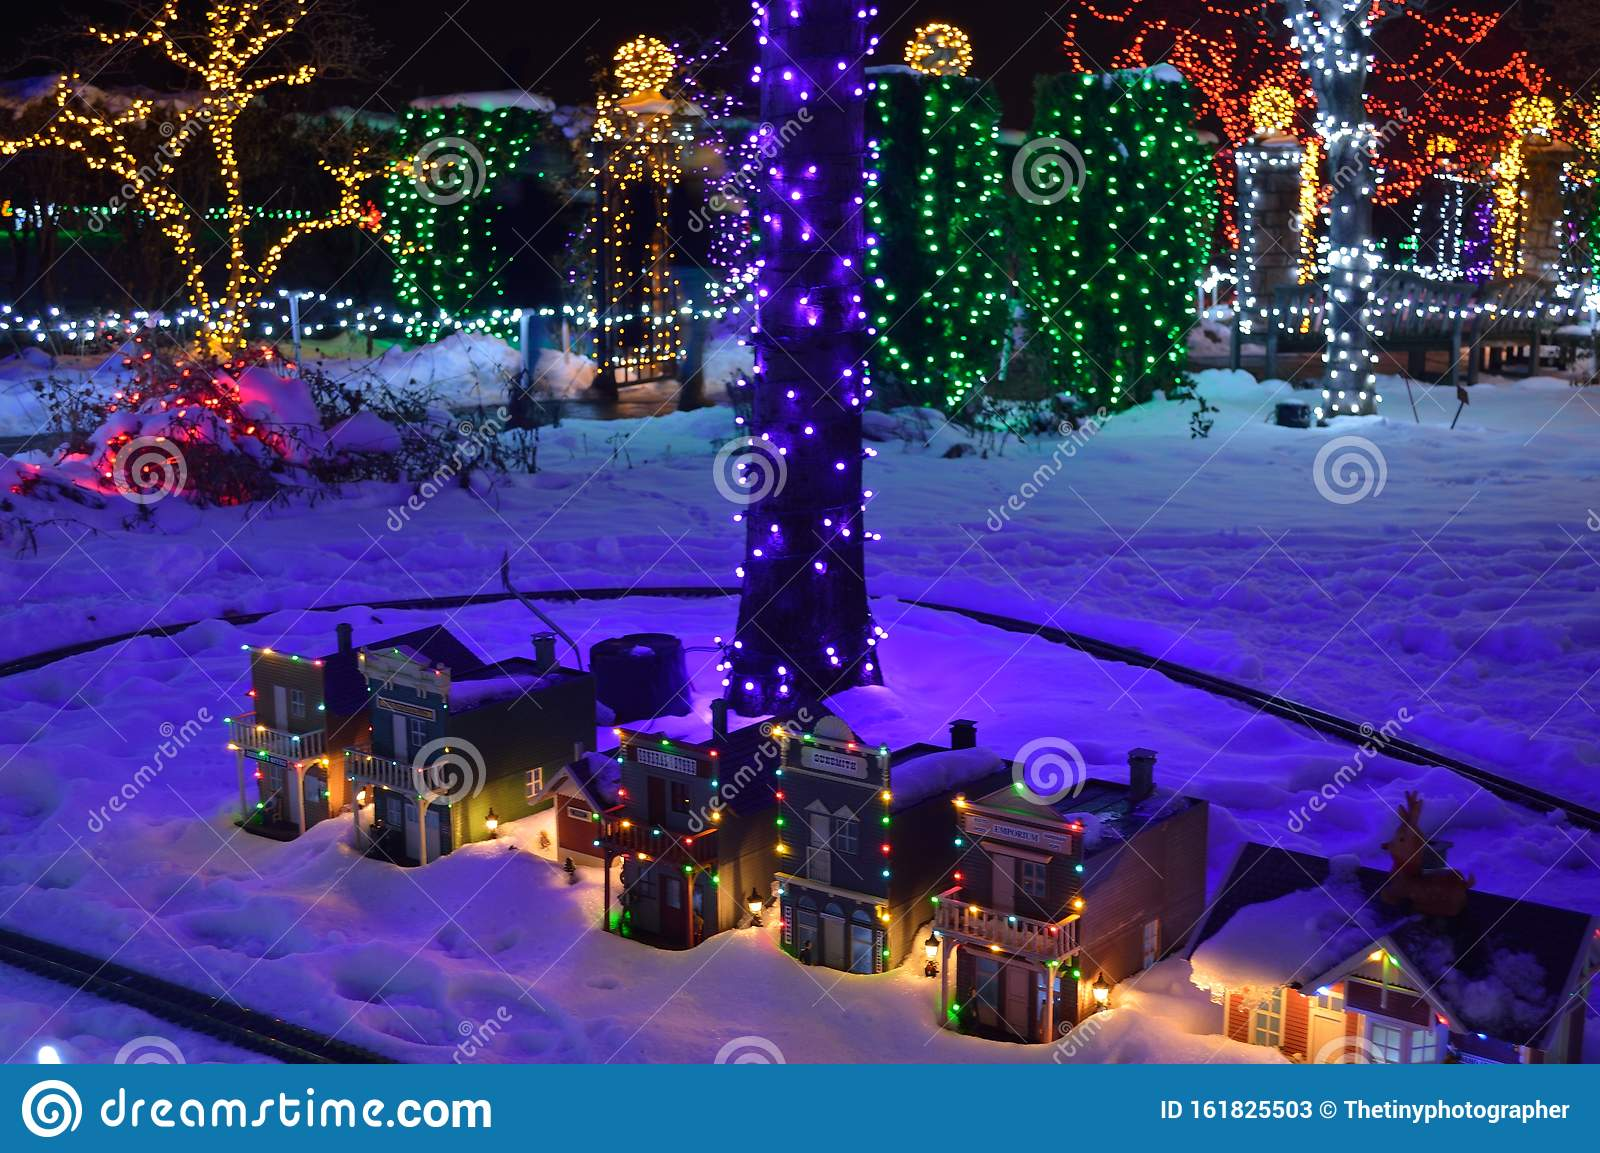 Electric Train Village Christmas Outdoor Scenes Stock Image Image Of Assorted Colorful 161825503